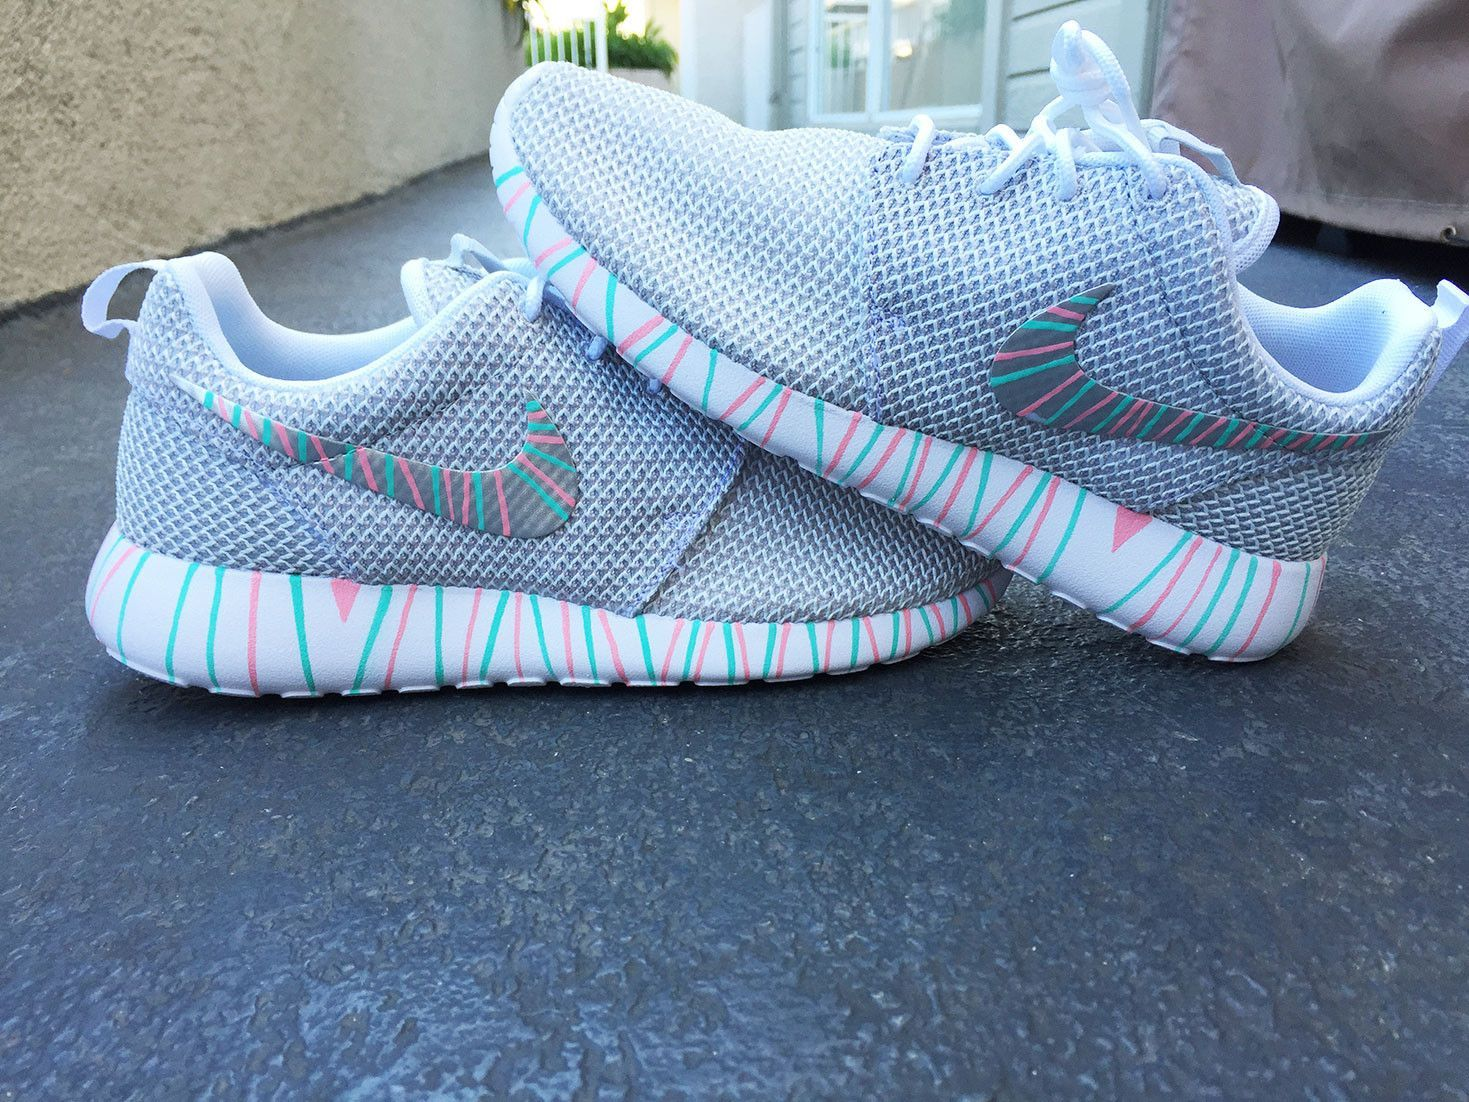 Womens Custom Nike Roshe Run sneakers, South Beach teal